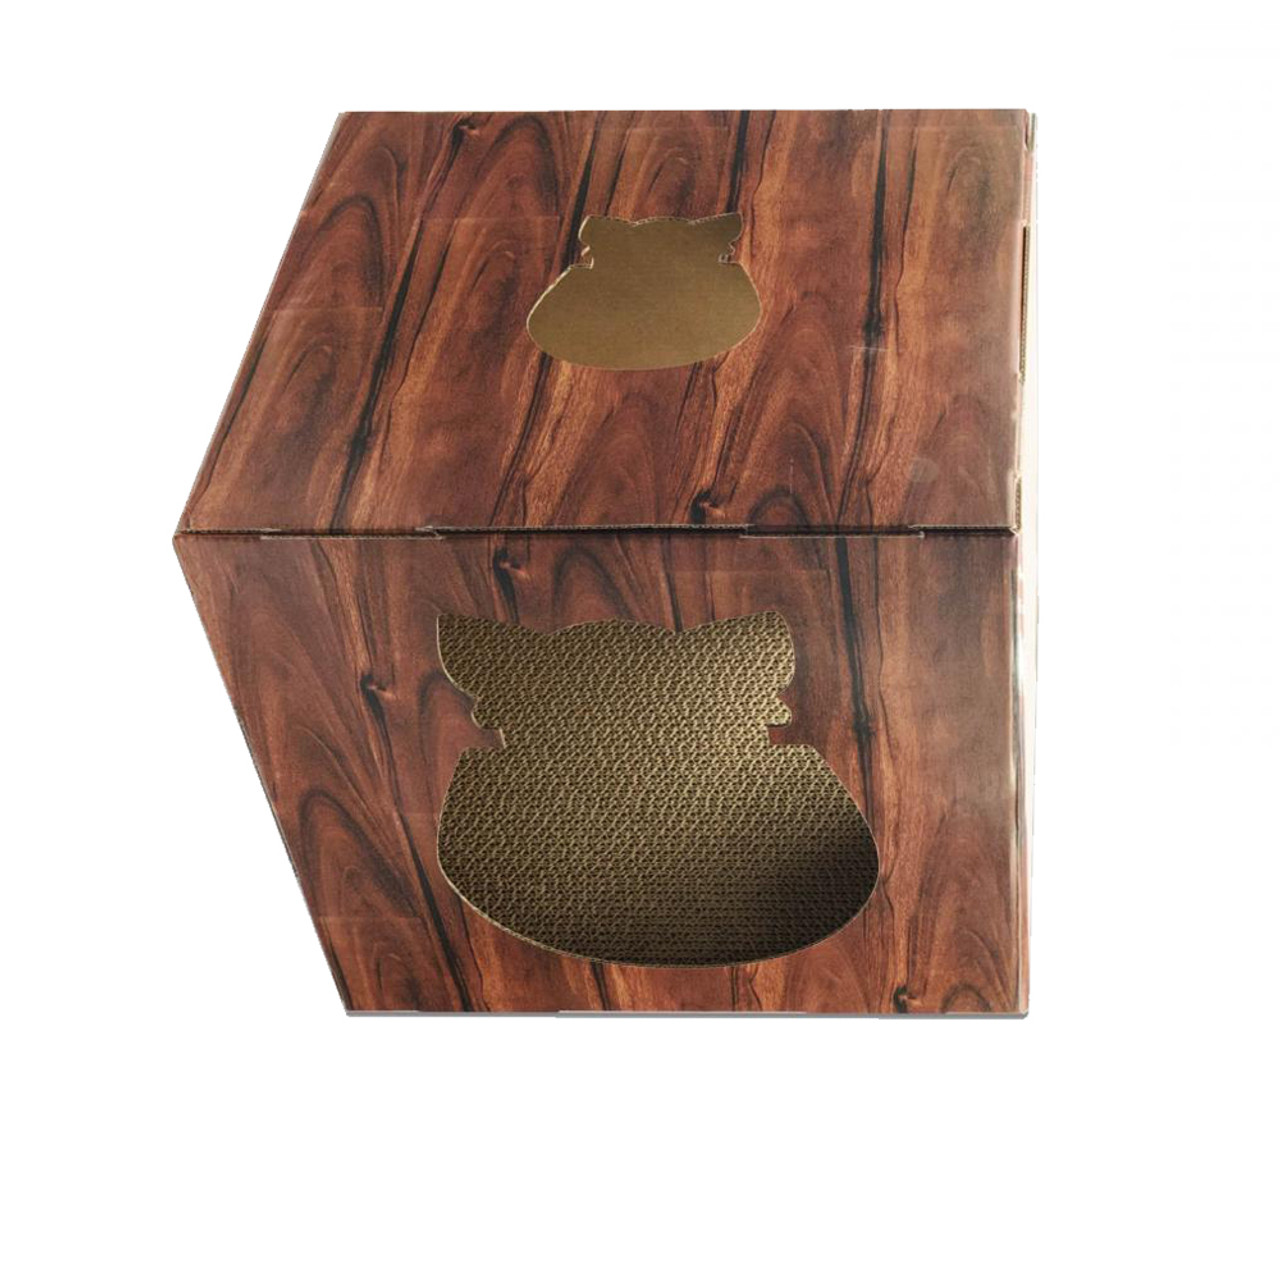 Doyen Wood FunBox with Scratcher Board Cat Toy